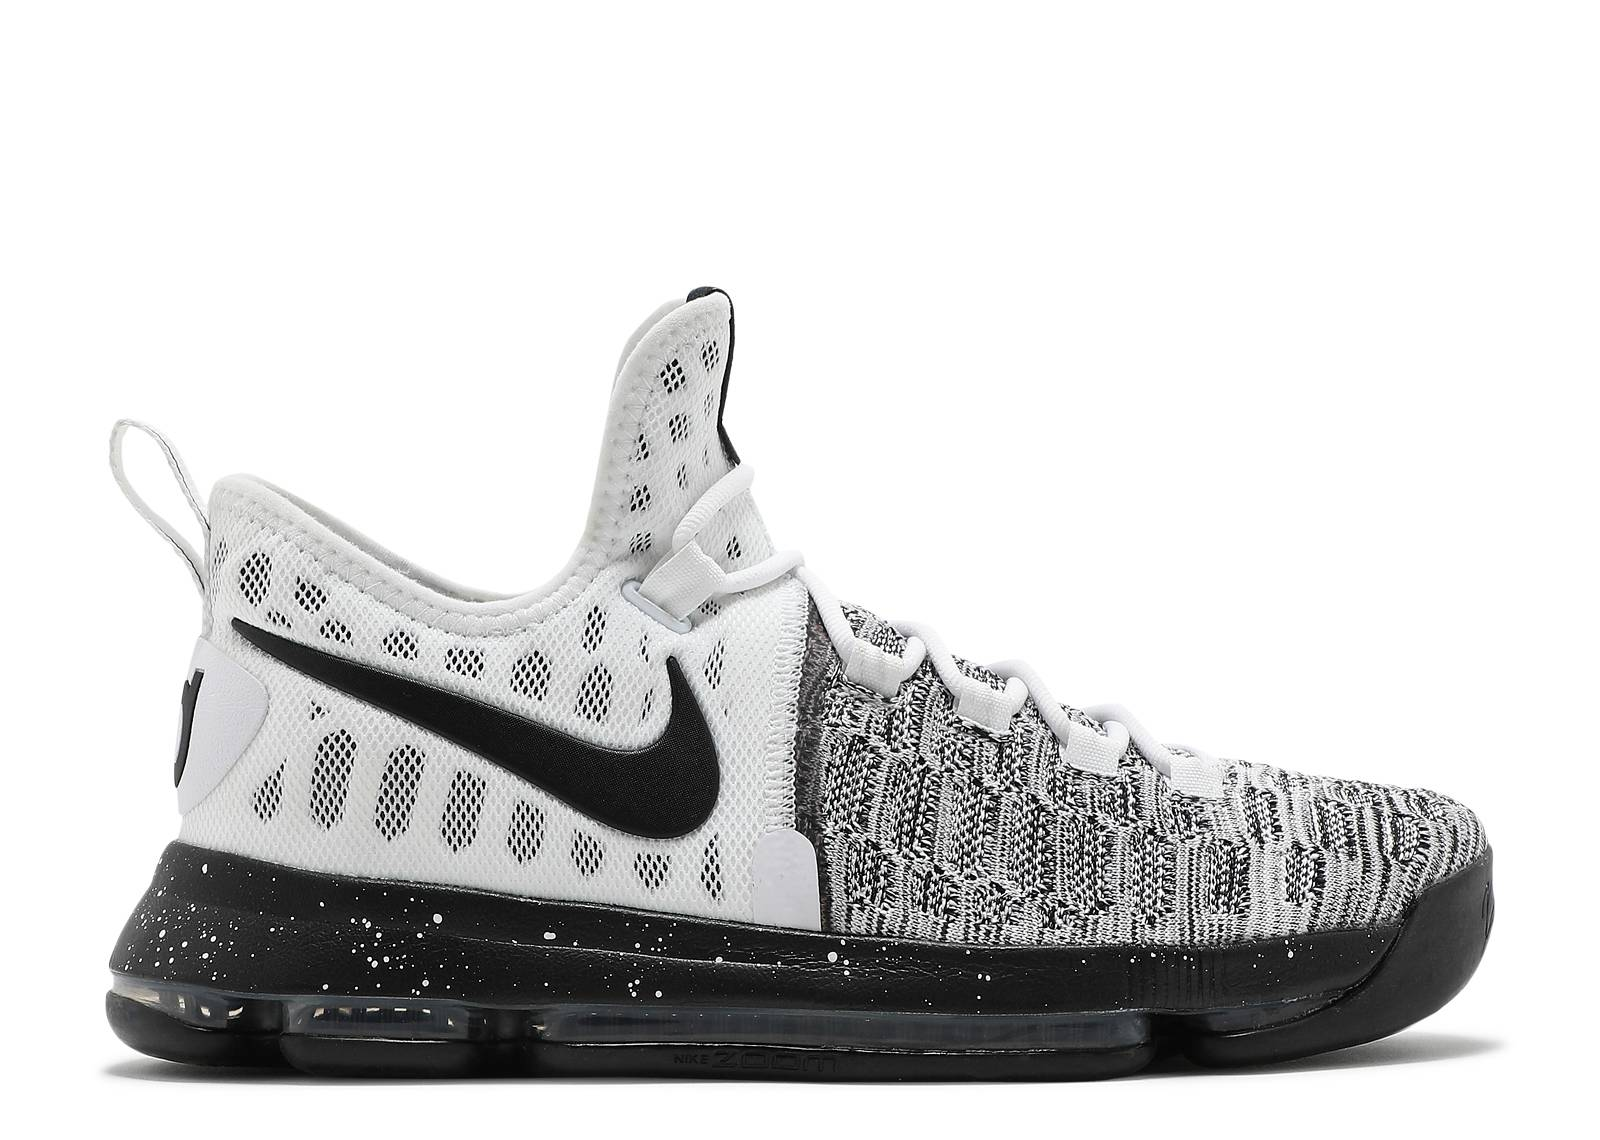 separation shoes 6eefe 560fe nike. Zoom kd 9